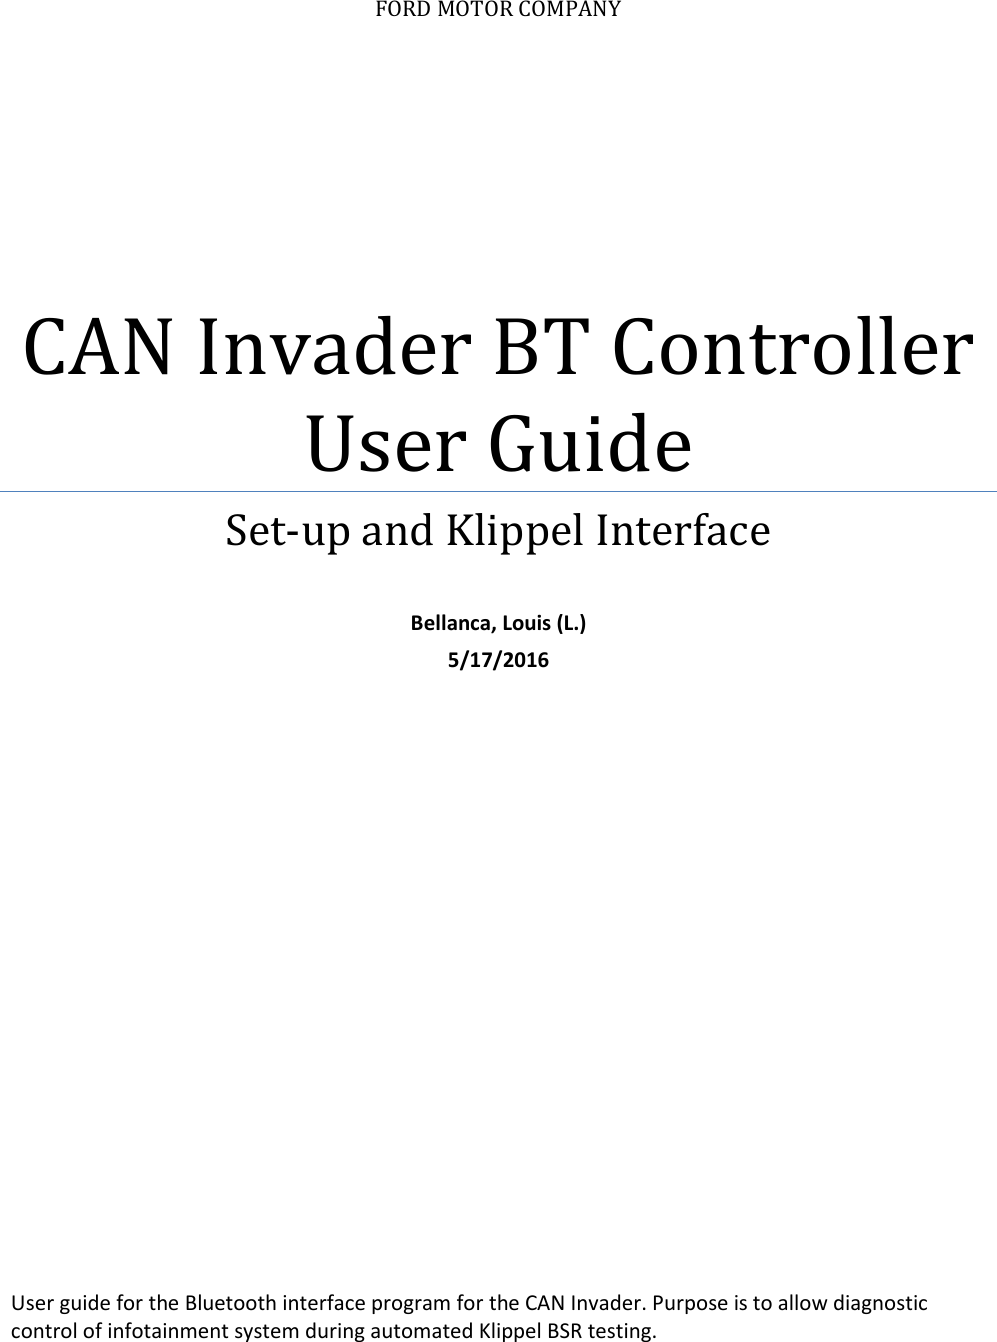 How To Set Up CAN Invader And UD100 Bluetooth Adapter For